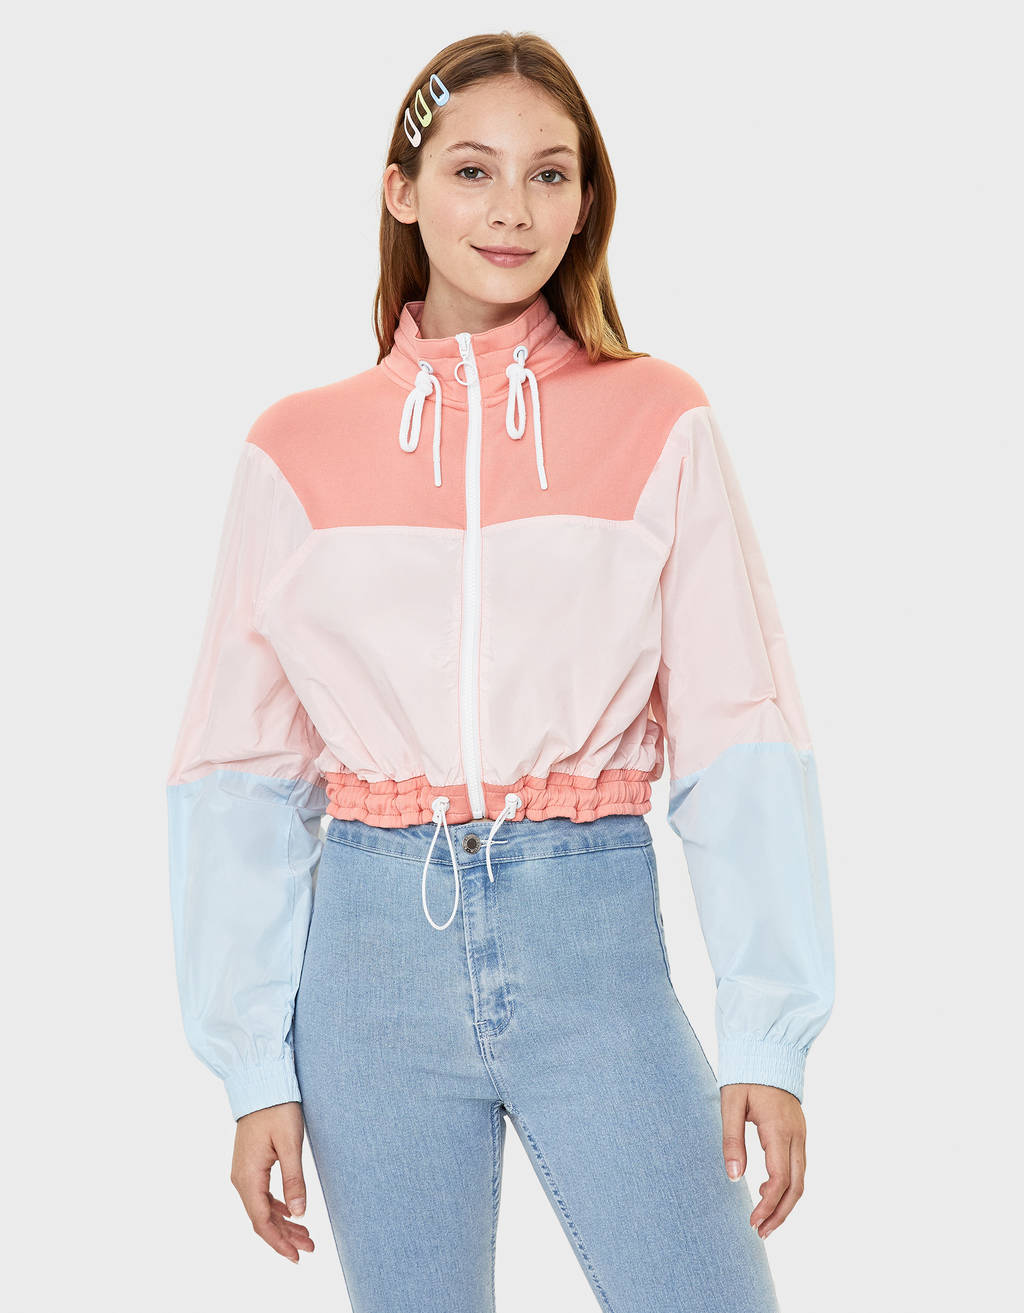 e3a1db878 Women's jackets - Fall 2019 | Bershka